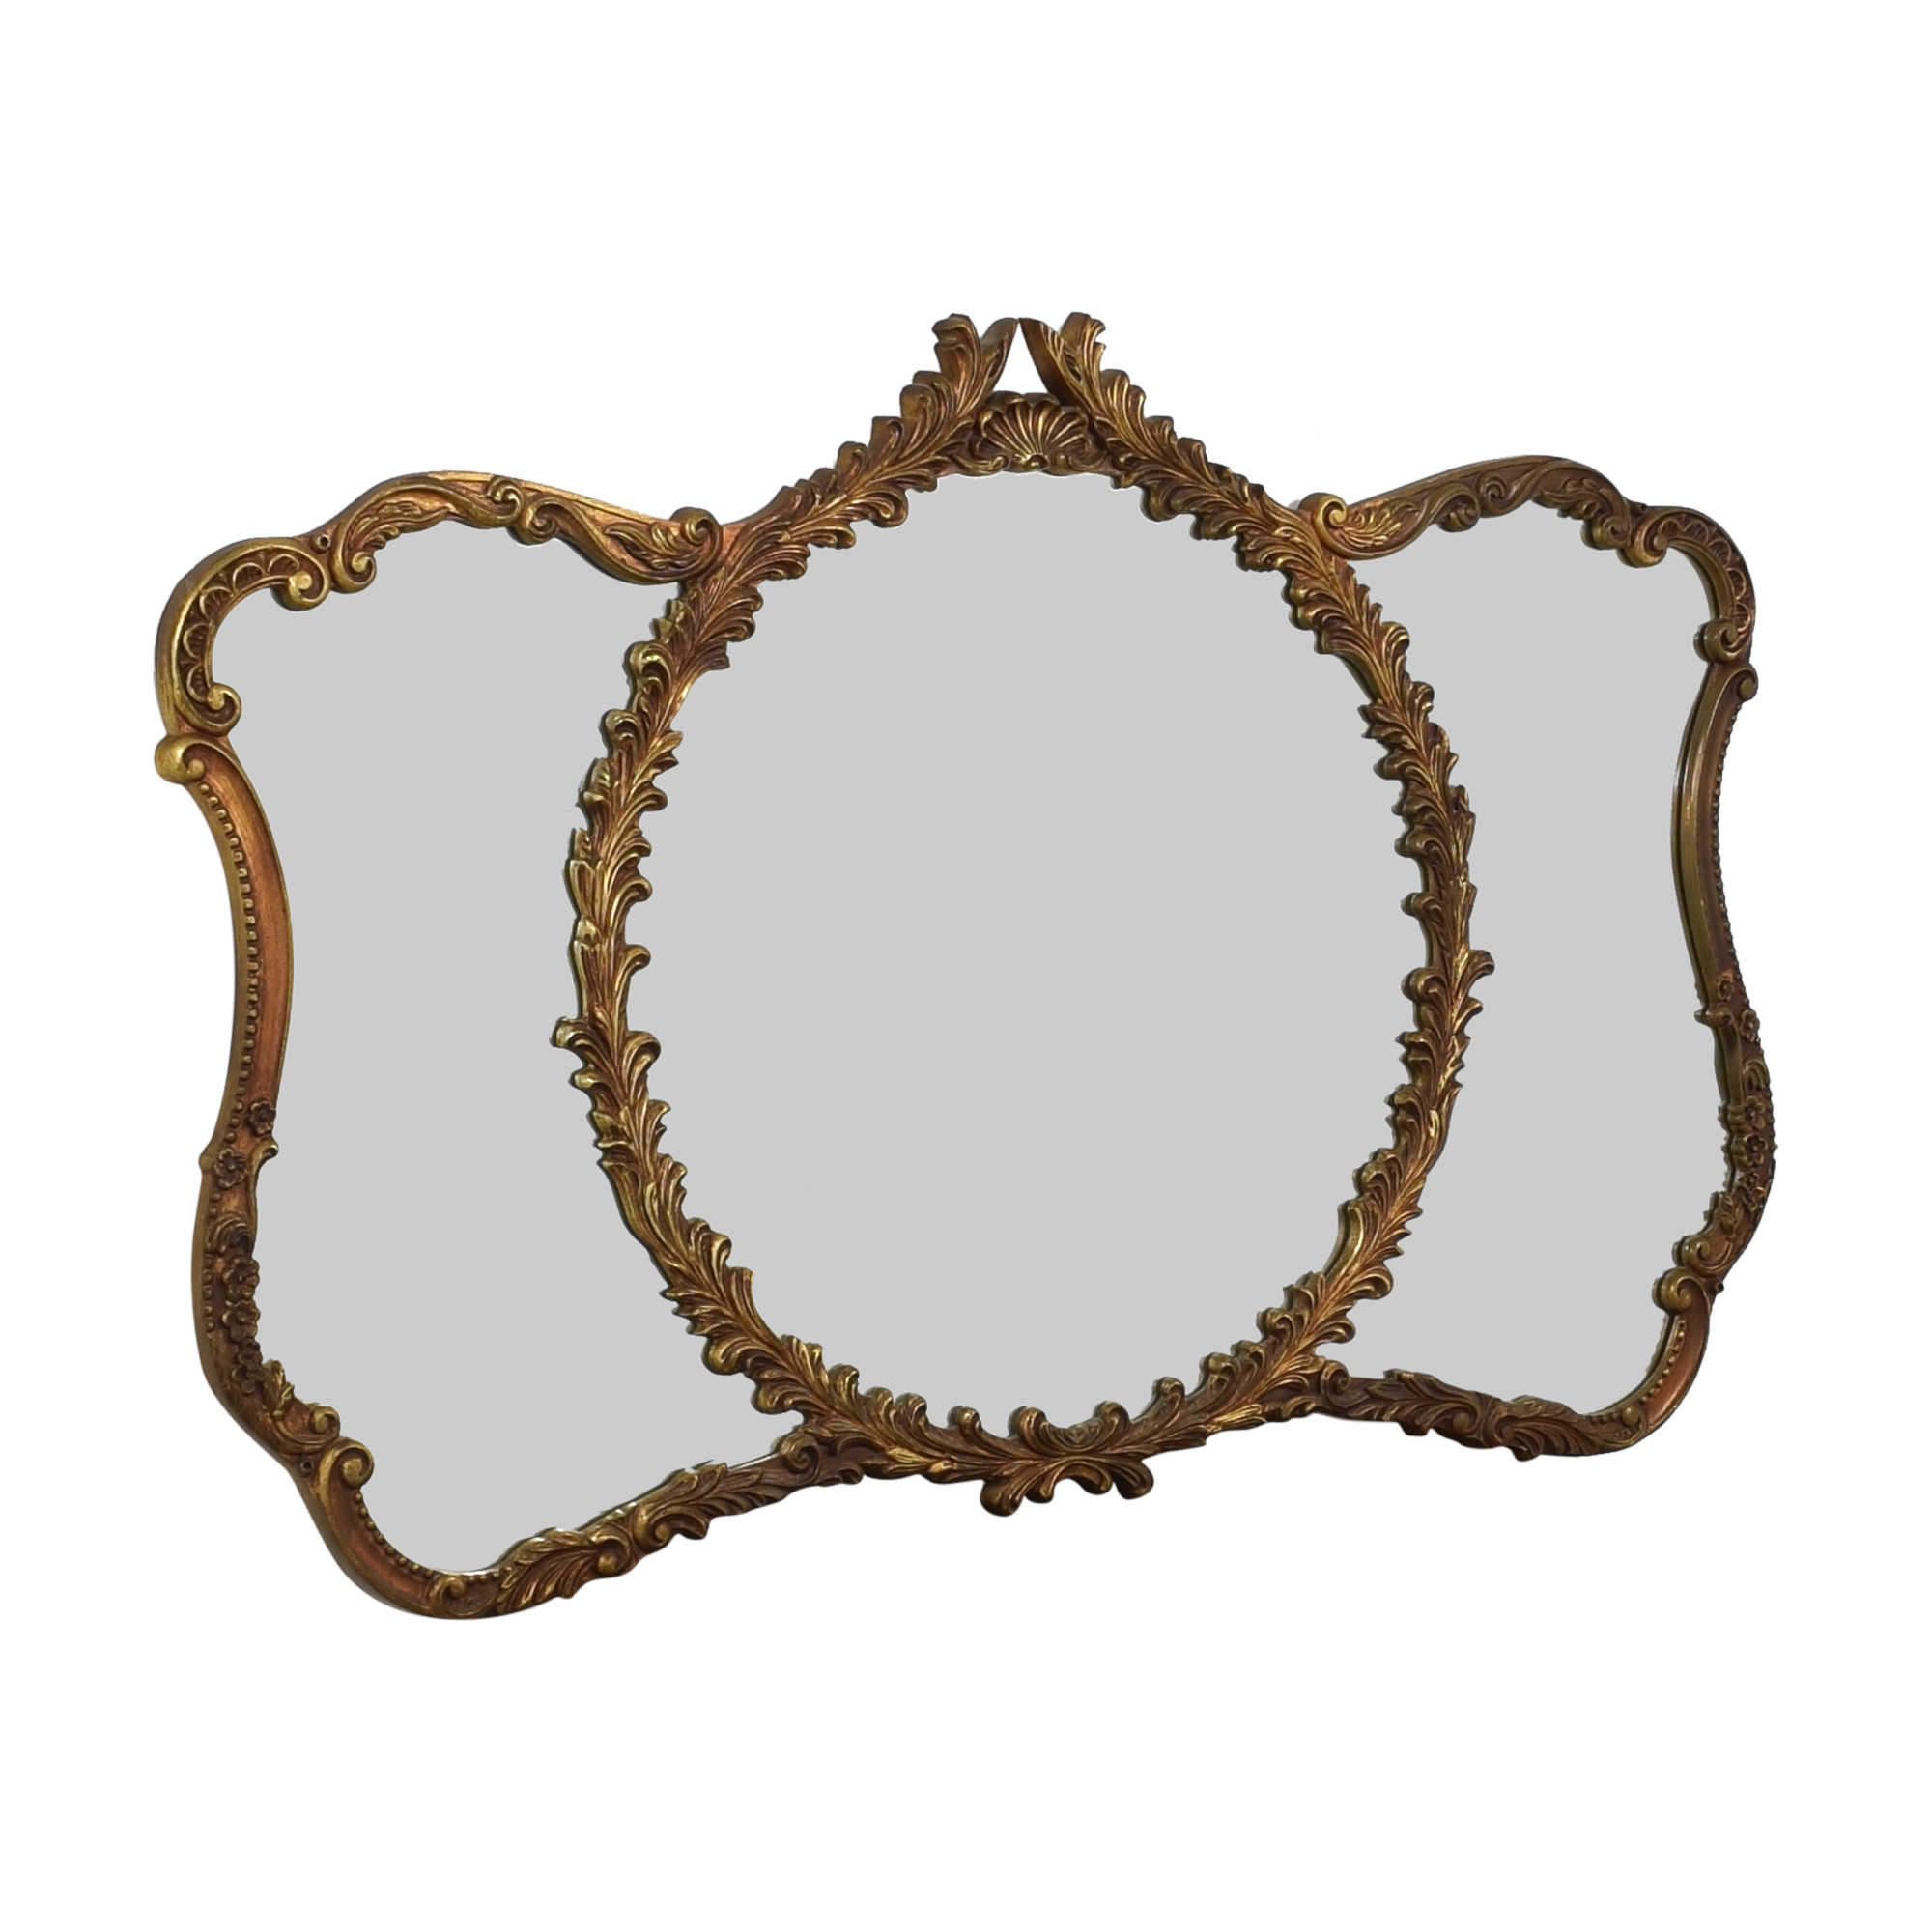 Union City Mirror & Table Co. Union City Mirror & Table Co. Carved Wall Mirror discount